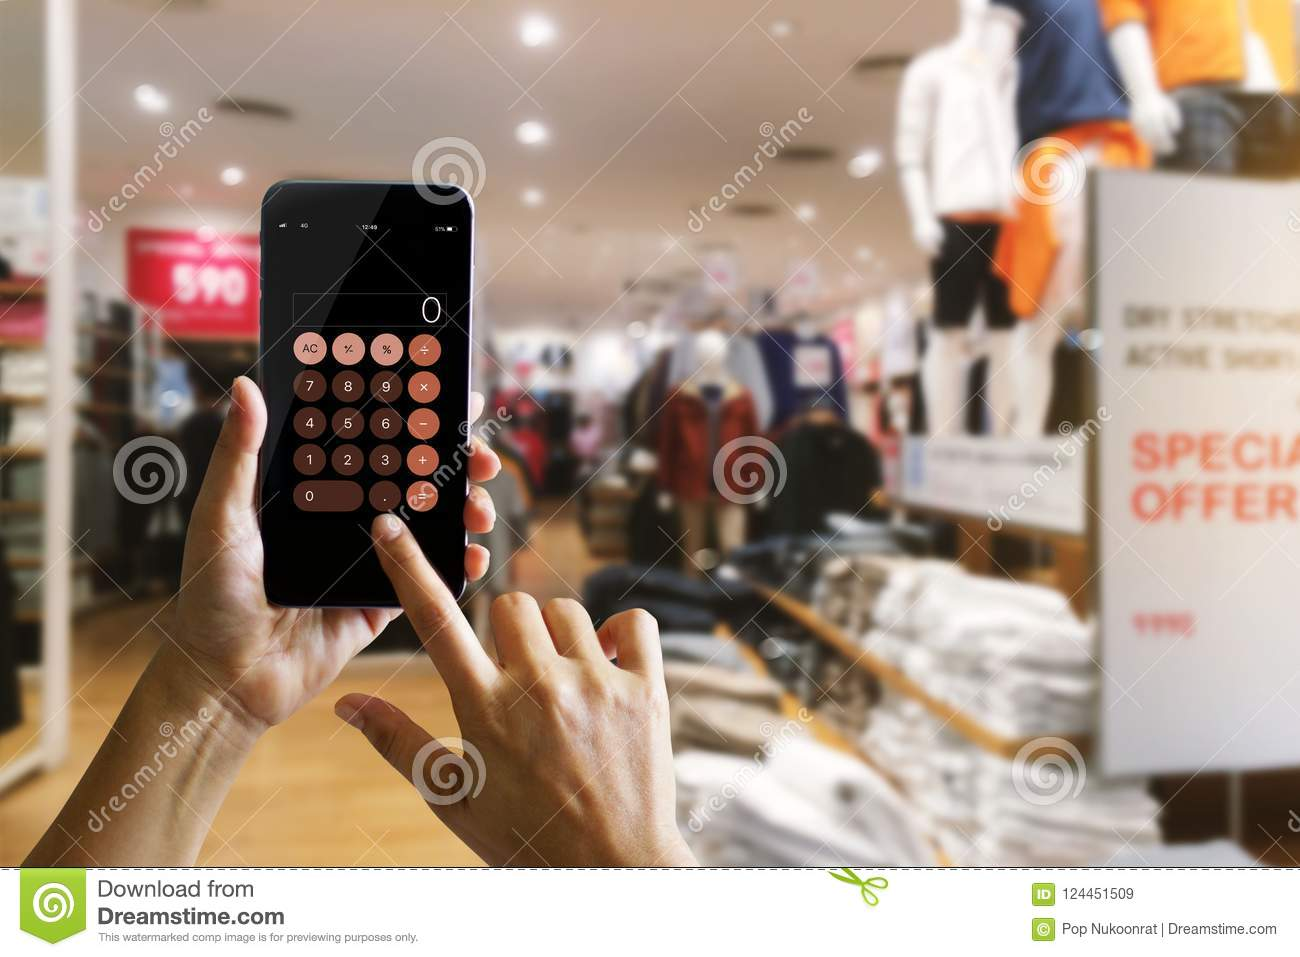 Hands Using Calculator Application On Mobile Smartphone